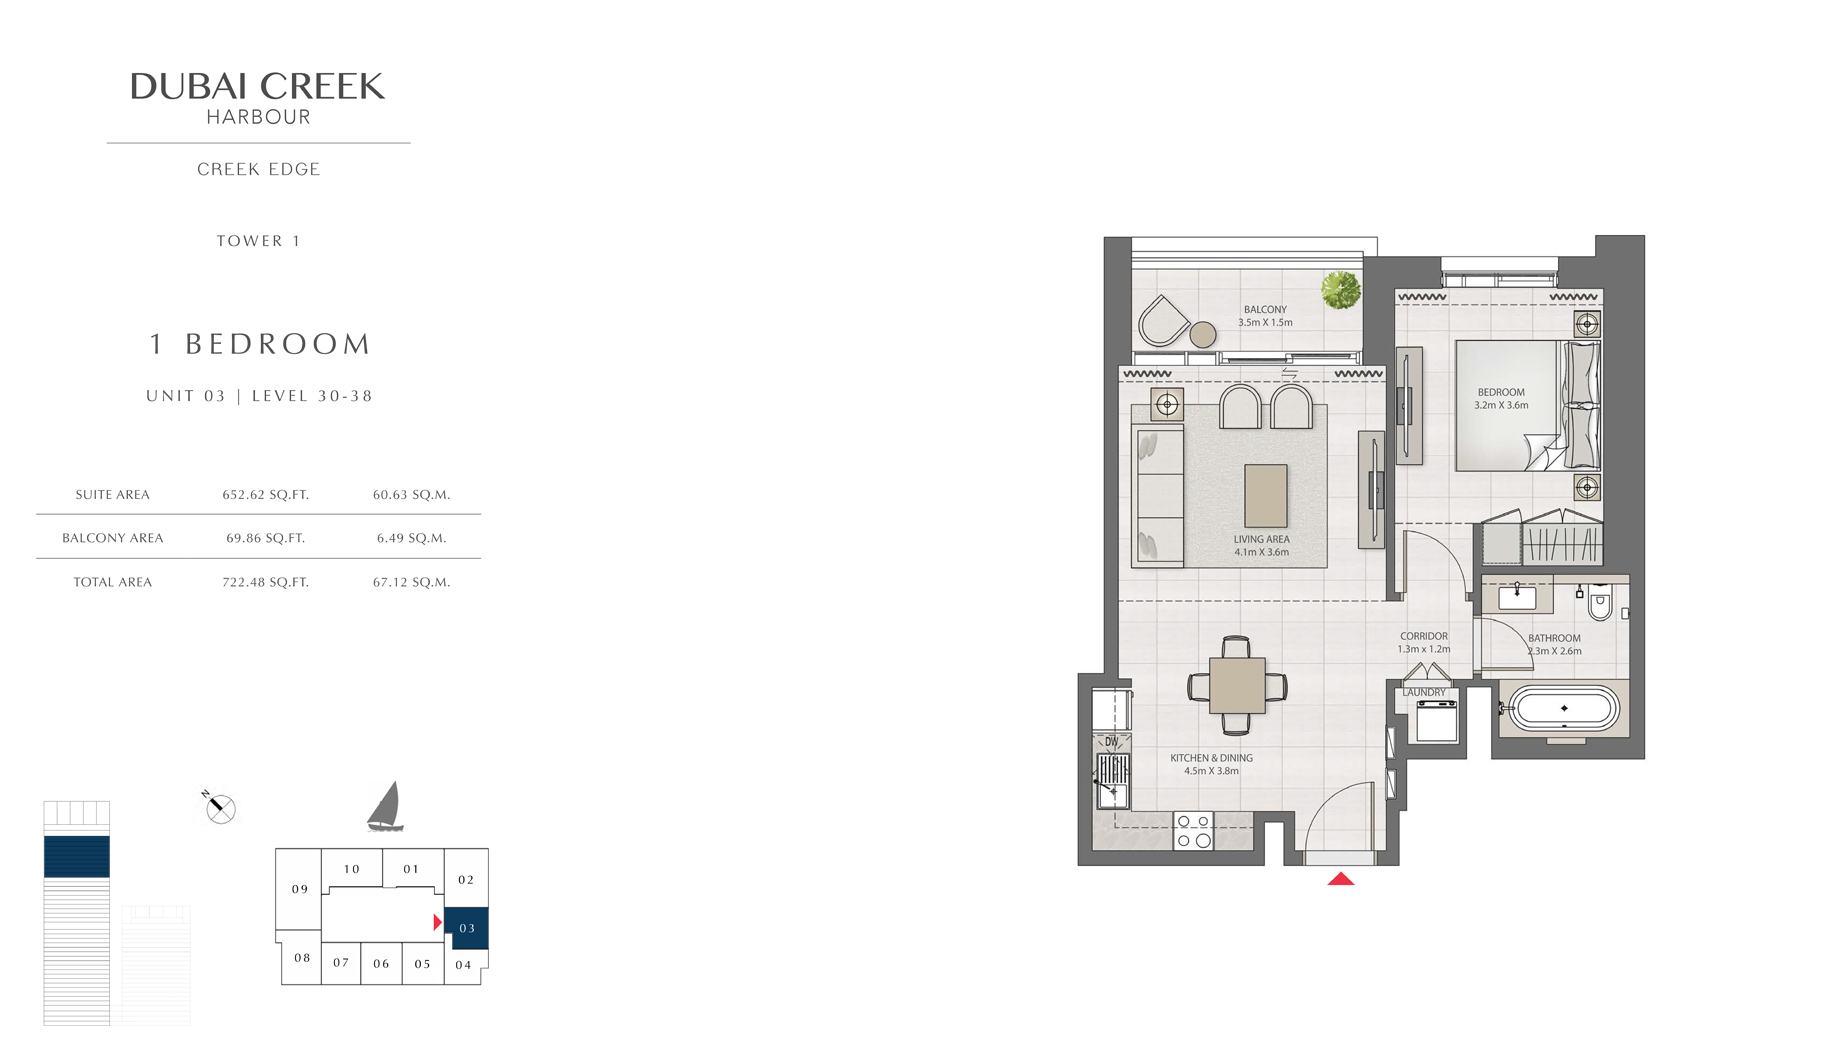 1 Bedroom Tower 1 Unit 03 Level 30-38 Size 722 sq.ft